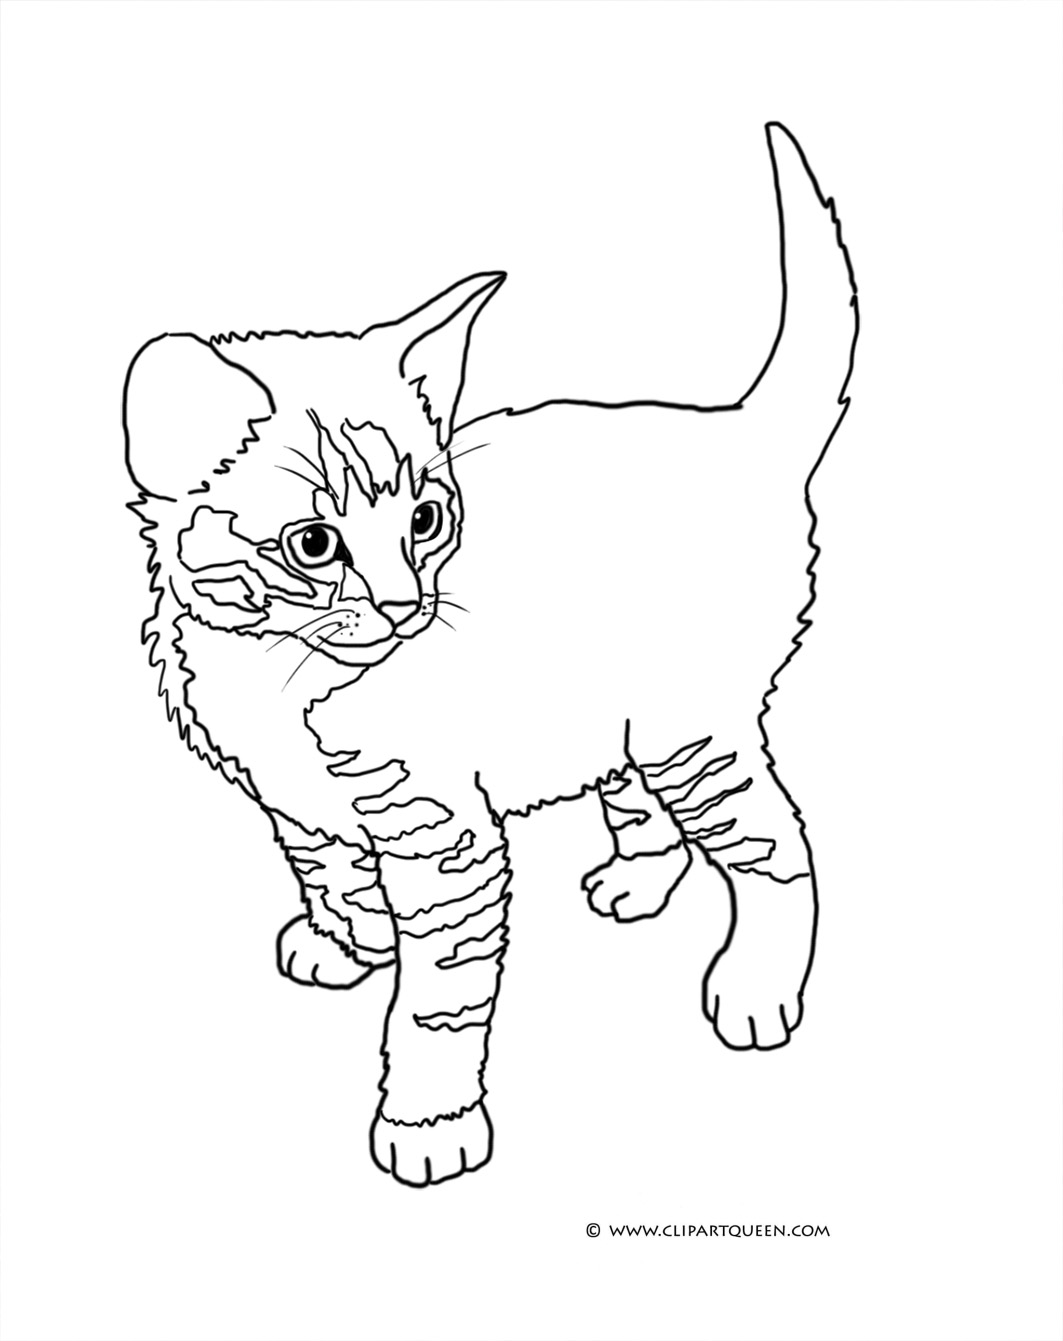 cat clipart coloring cat clipart coloring cat clipart coloring